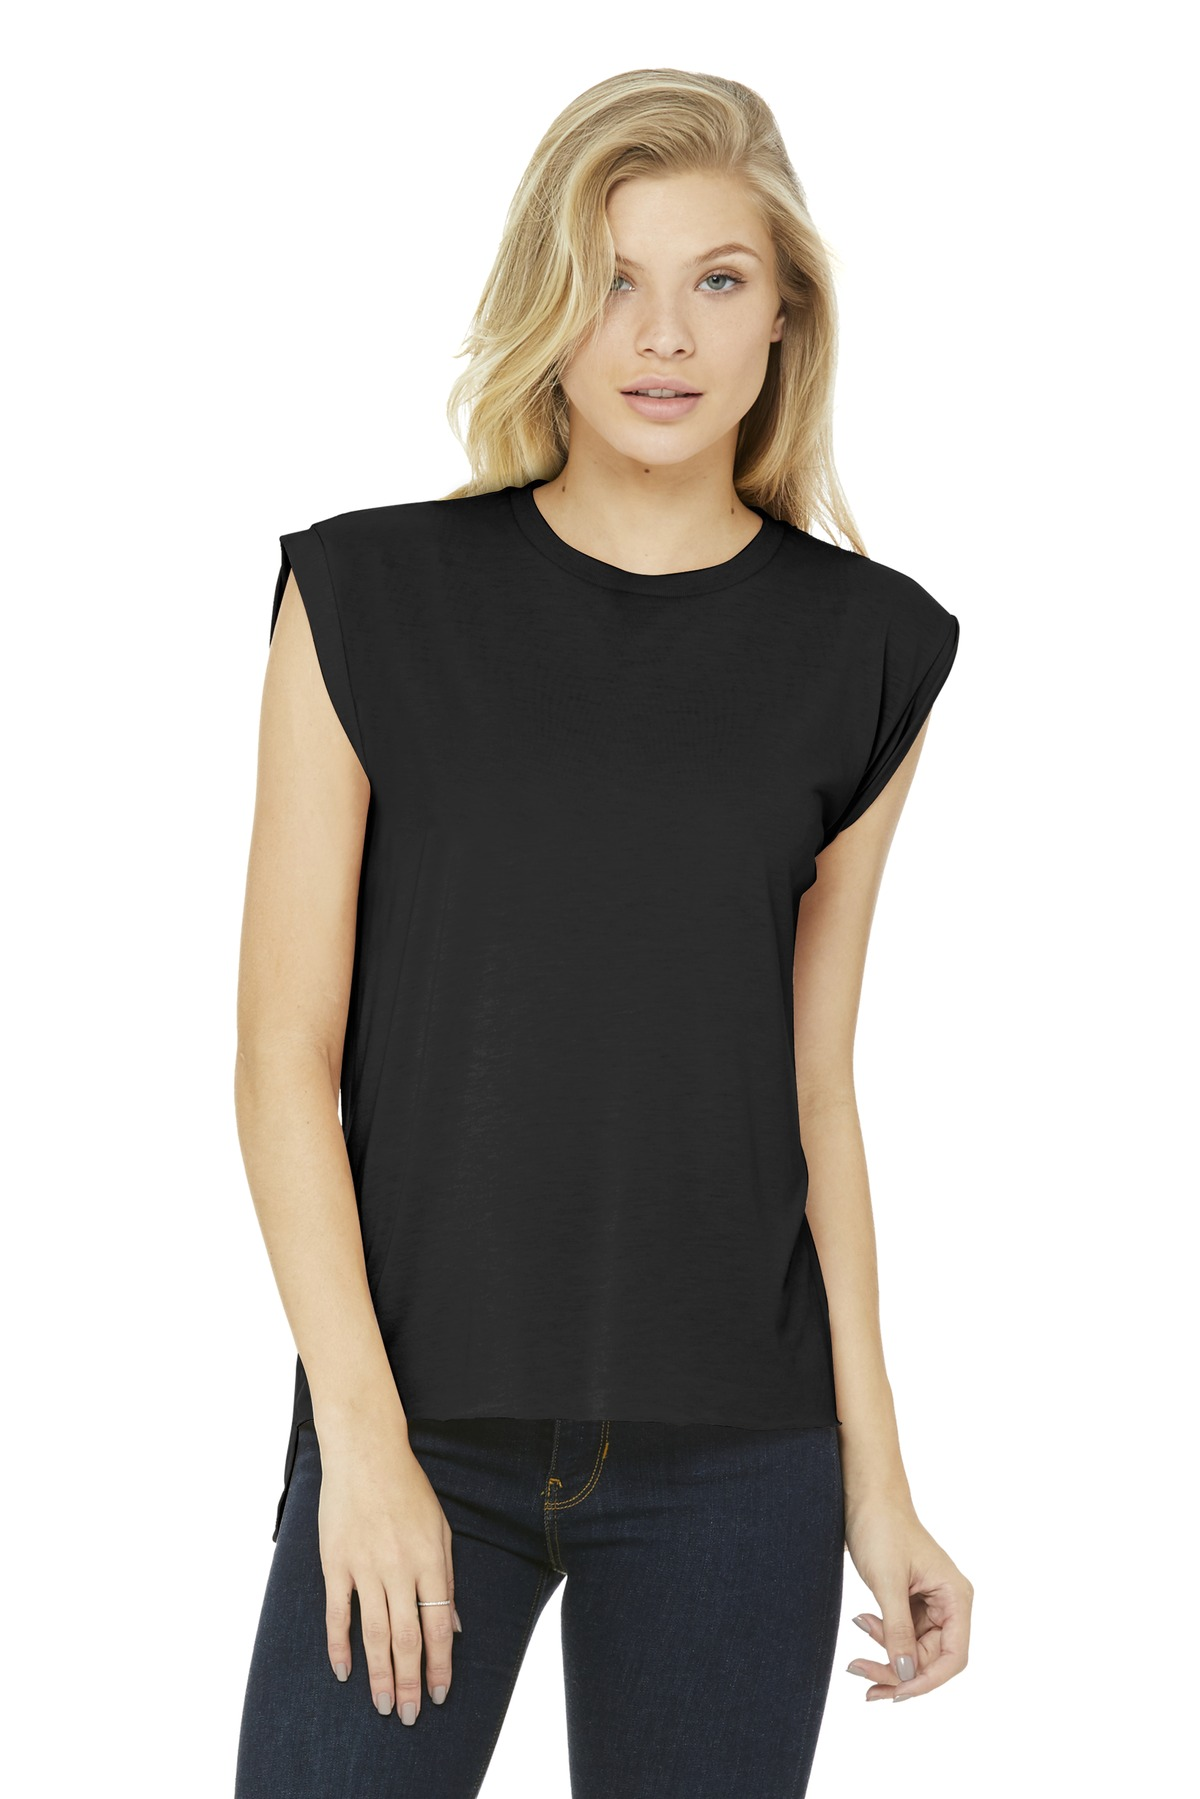 BELLA+CANVAS  ®  Women's Flowy Muscle Tee With Rolled Cuffs. BC8804 - Black